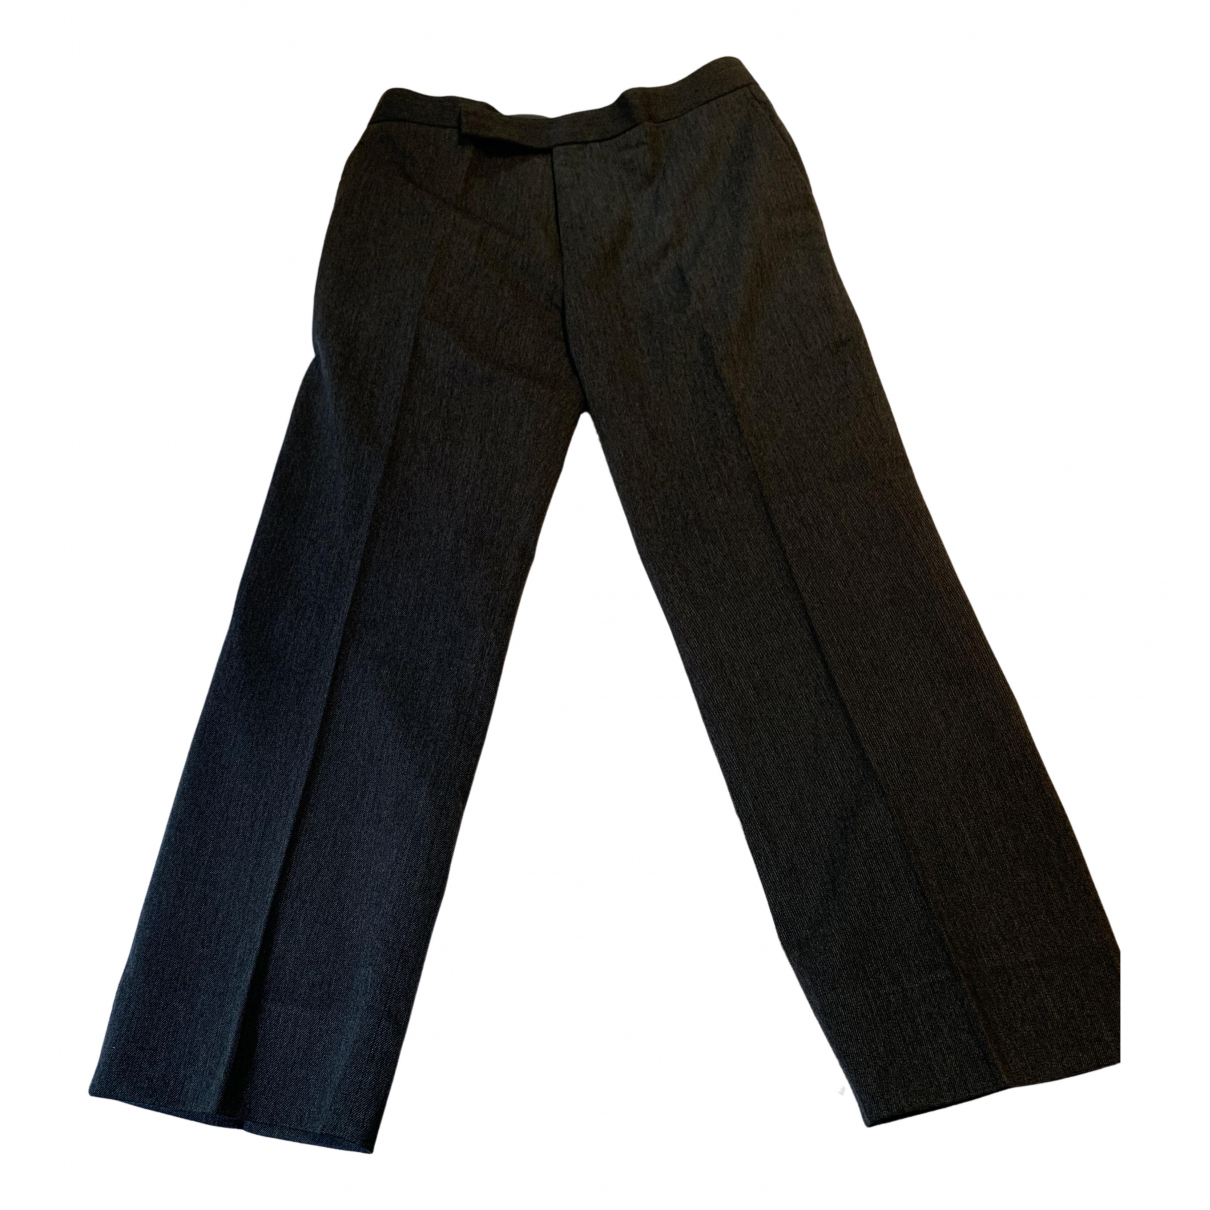 Marni N Anthracite Wool Trousers for Women 42 IT